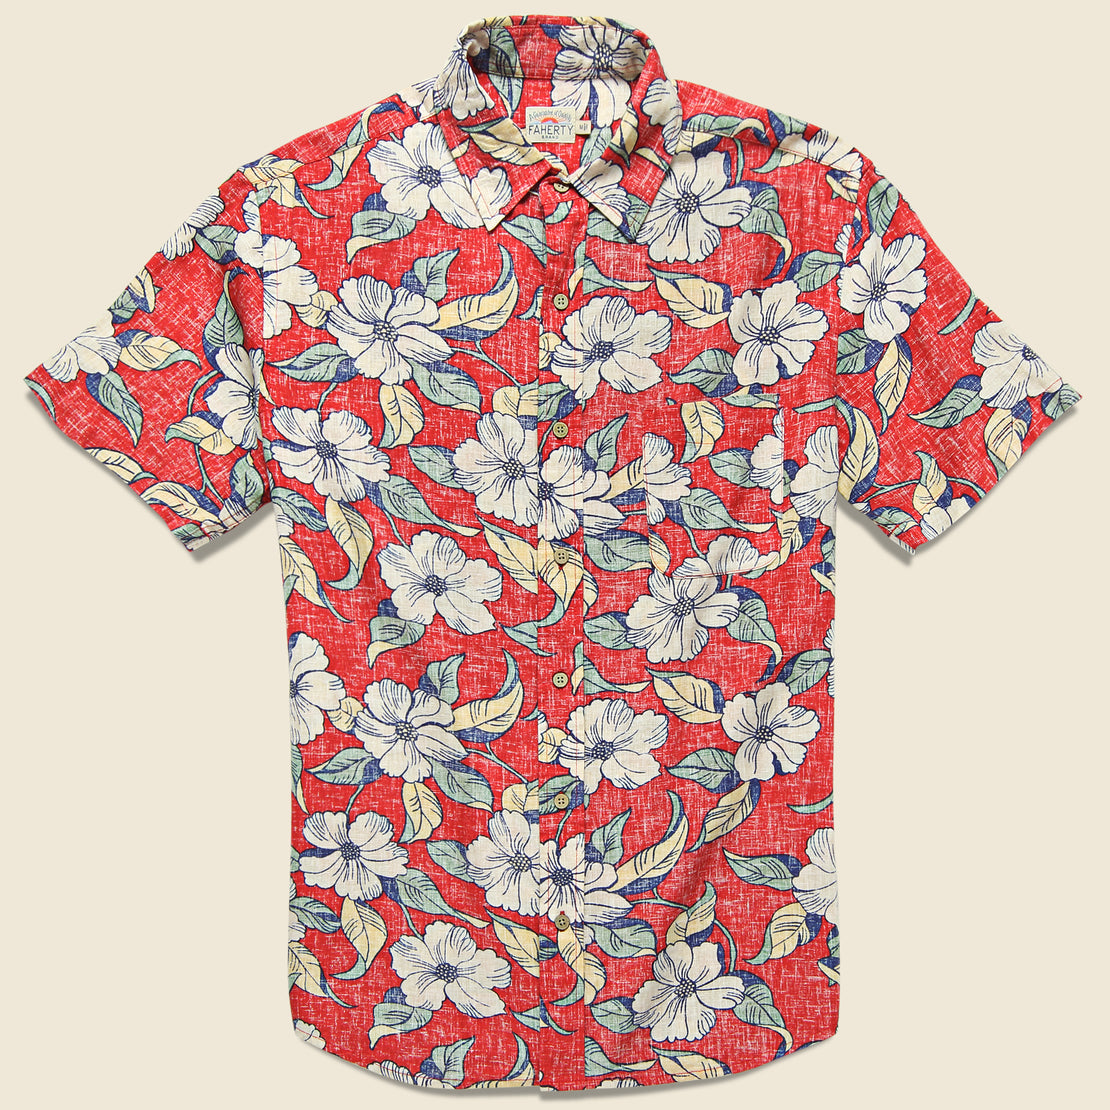 Faherty Reverse Print Coast Shirt - Red Retro